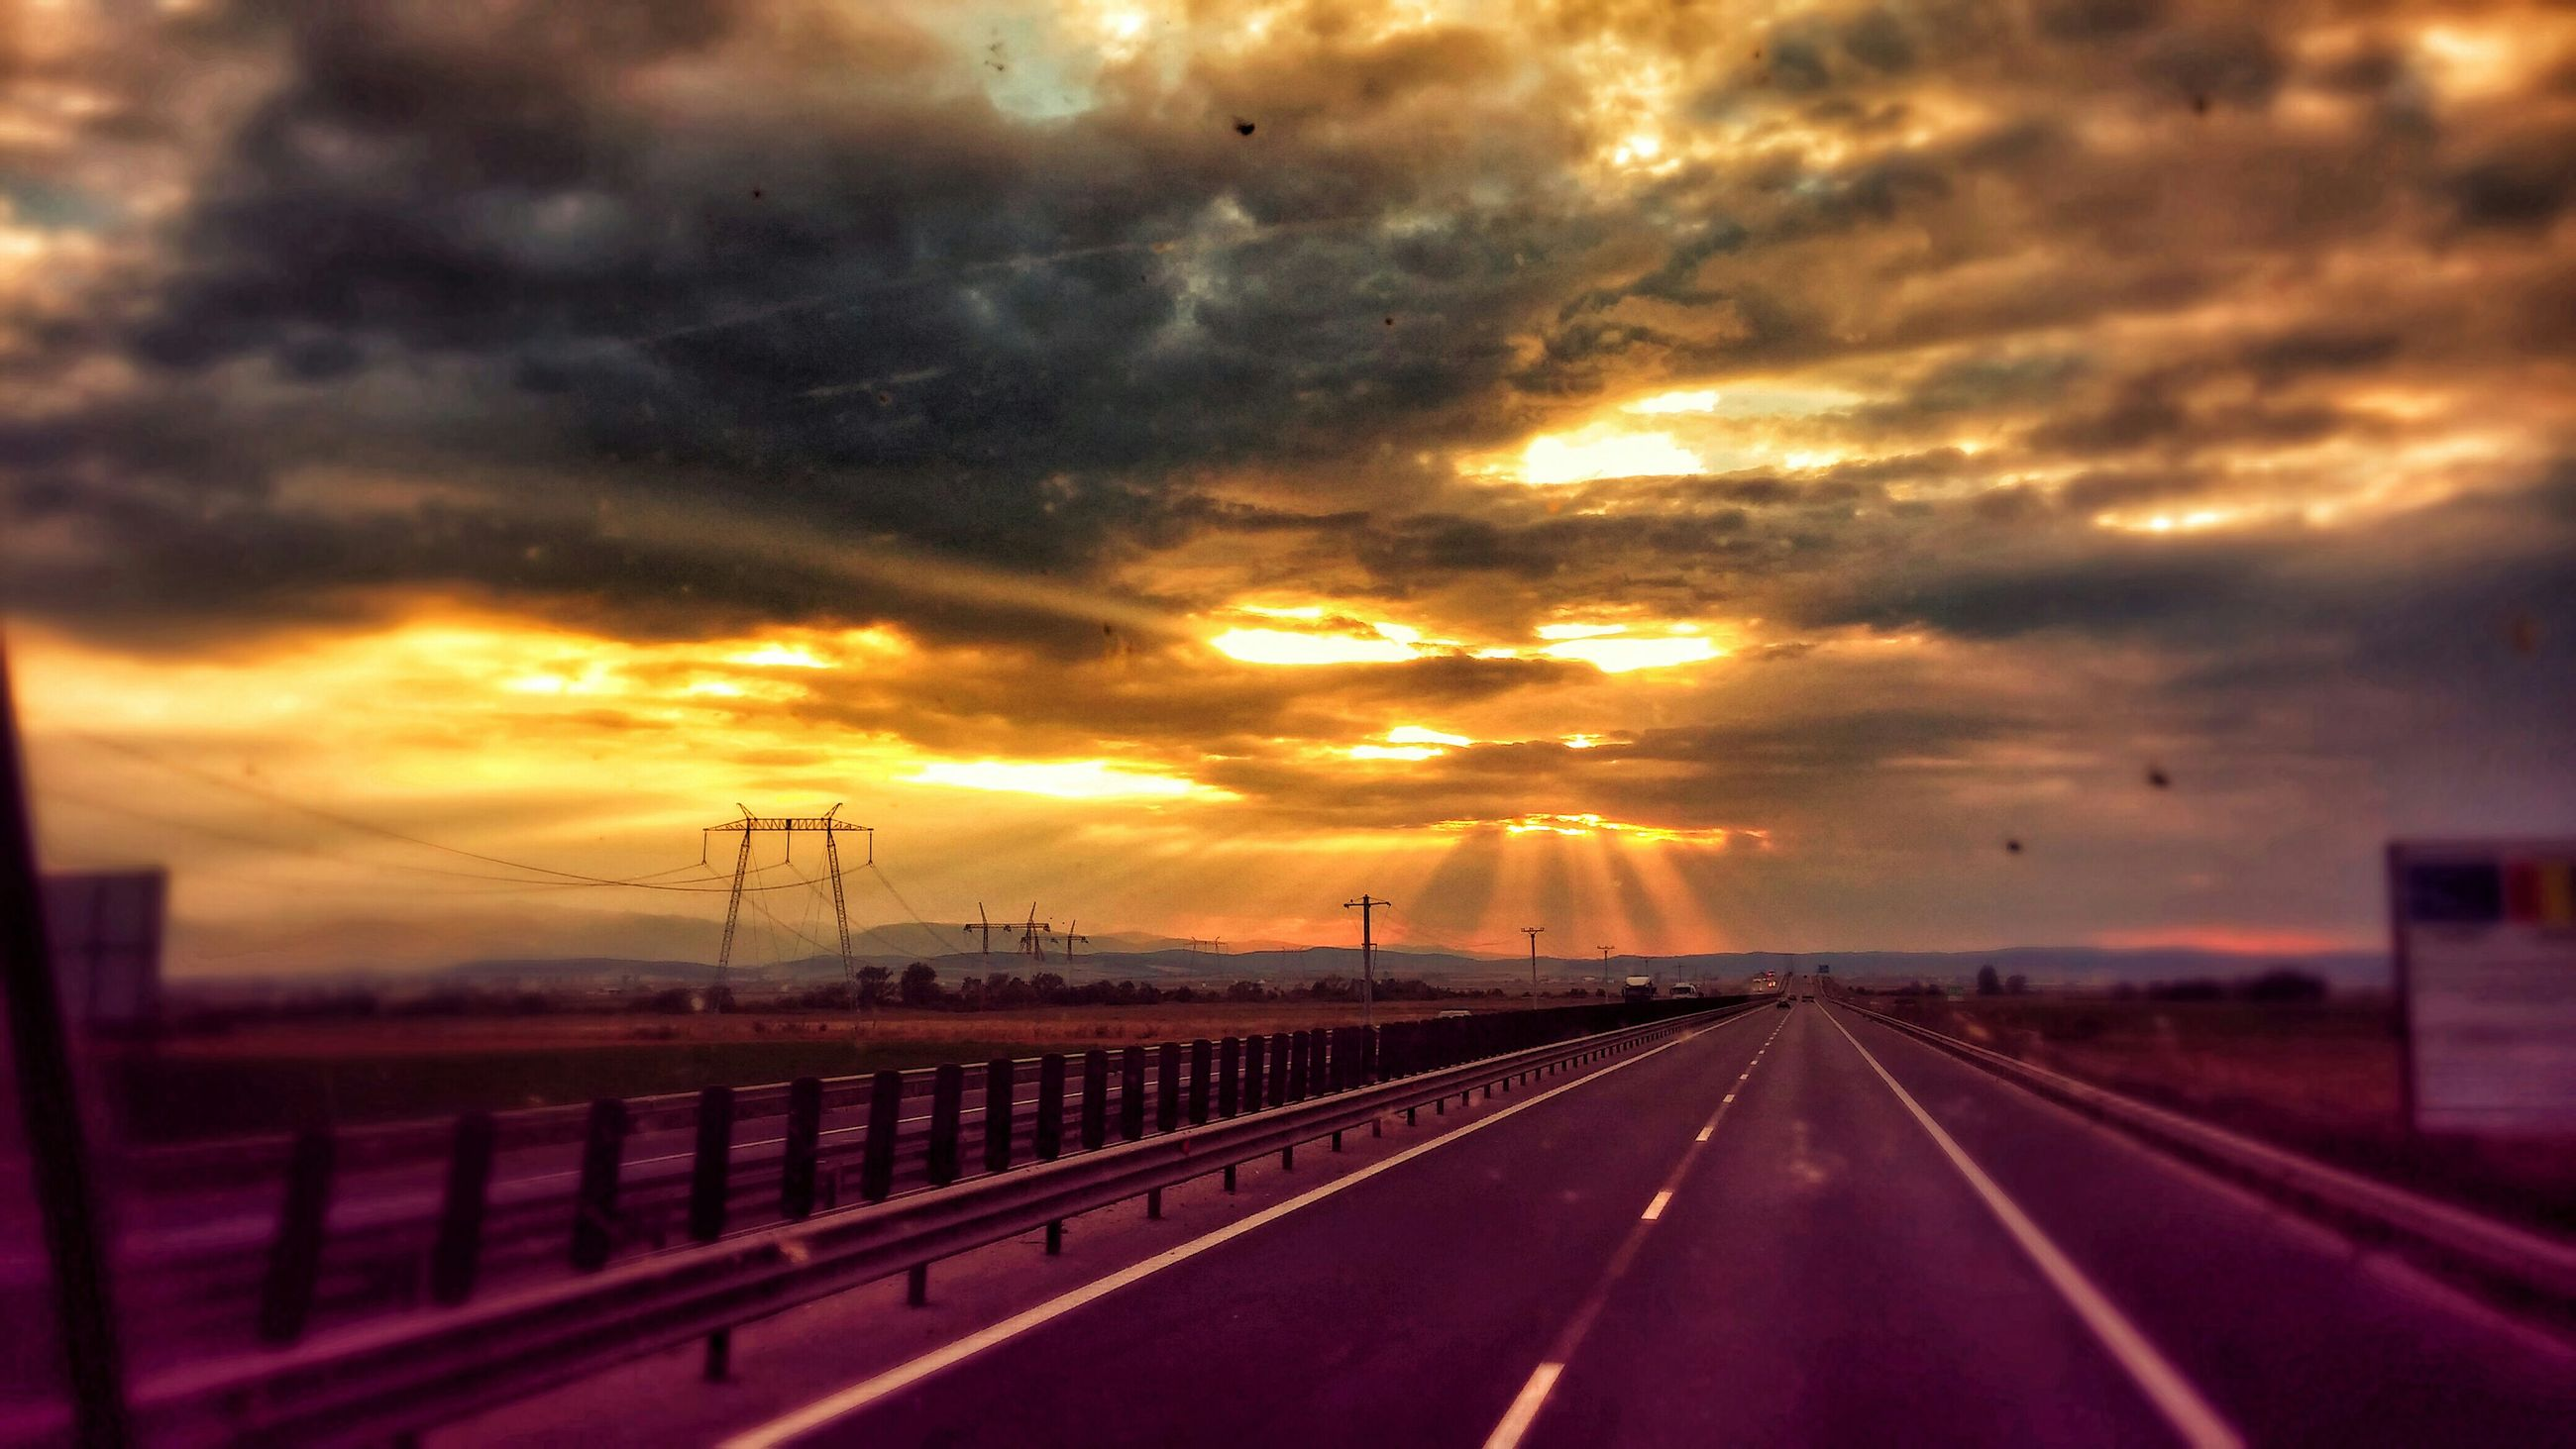 sunset, cloud - sky, sky, orange color, cloudy, dramatic sky, weather, sun, the way forward, cloud, transportation, overcast, diminishing perspective, beauty in nature, atmospheric mood, nature, scenics, storm cloud, road, silhouette